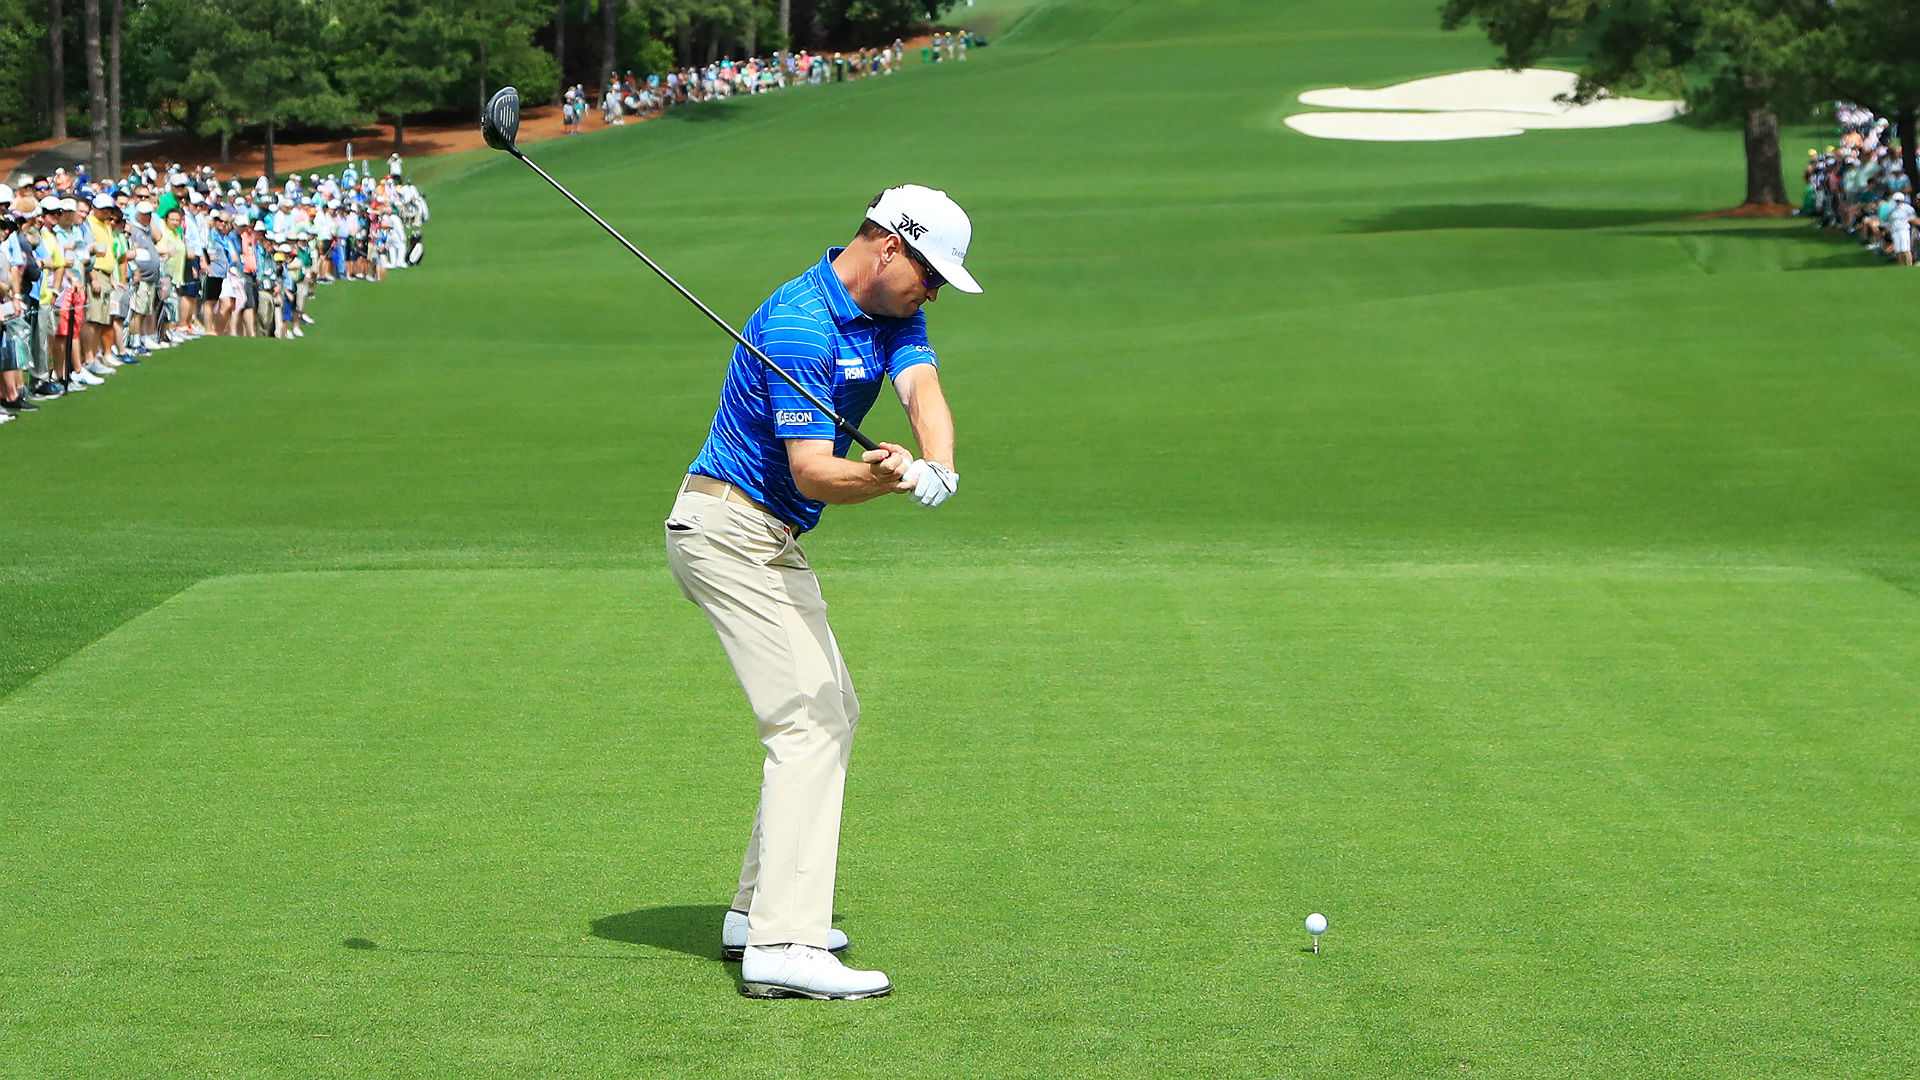 Masters 2019: Zach Johnson hilariously hits ball on a warmup swing